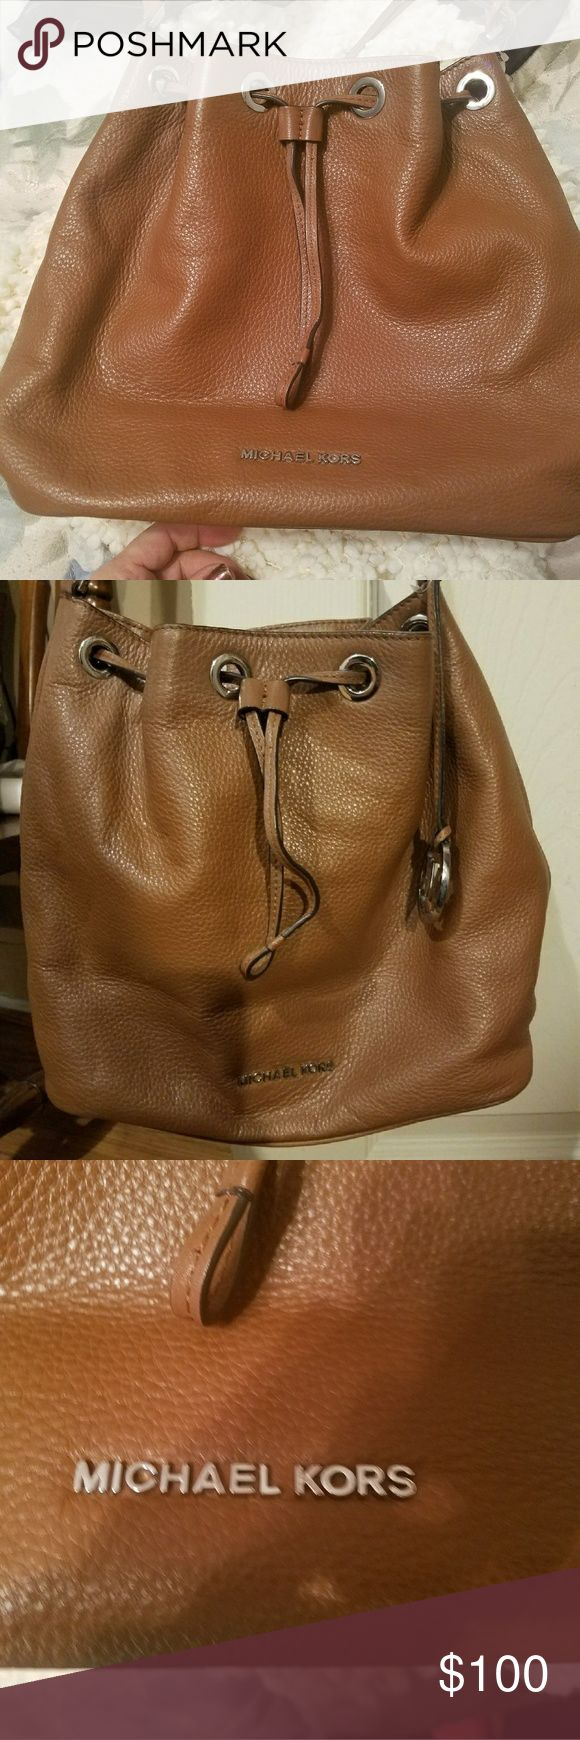 CLEARANCE!! Michael Kors brown leather handbag Michael Kors beautiful brown leather handbag gently used. Has a few small marks inside. 14 in across, 10.5 ht. Michael Kors Bags Shoulder Bags